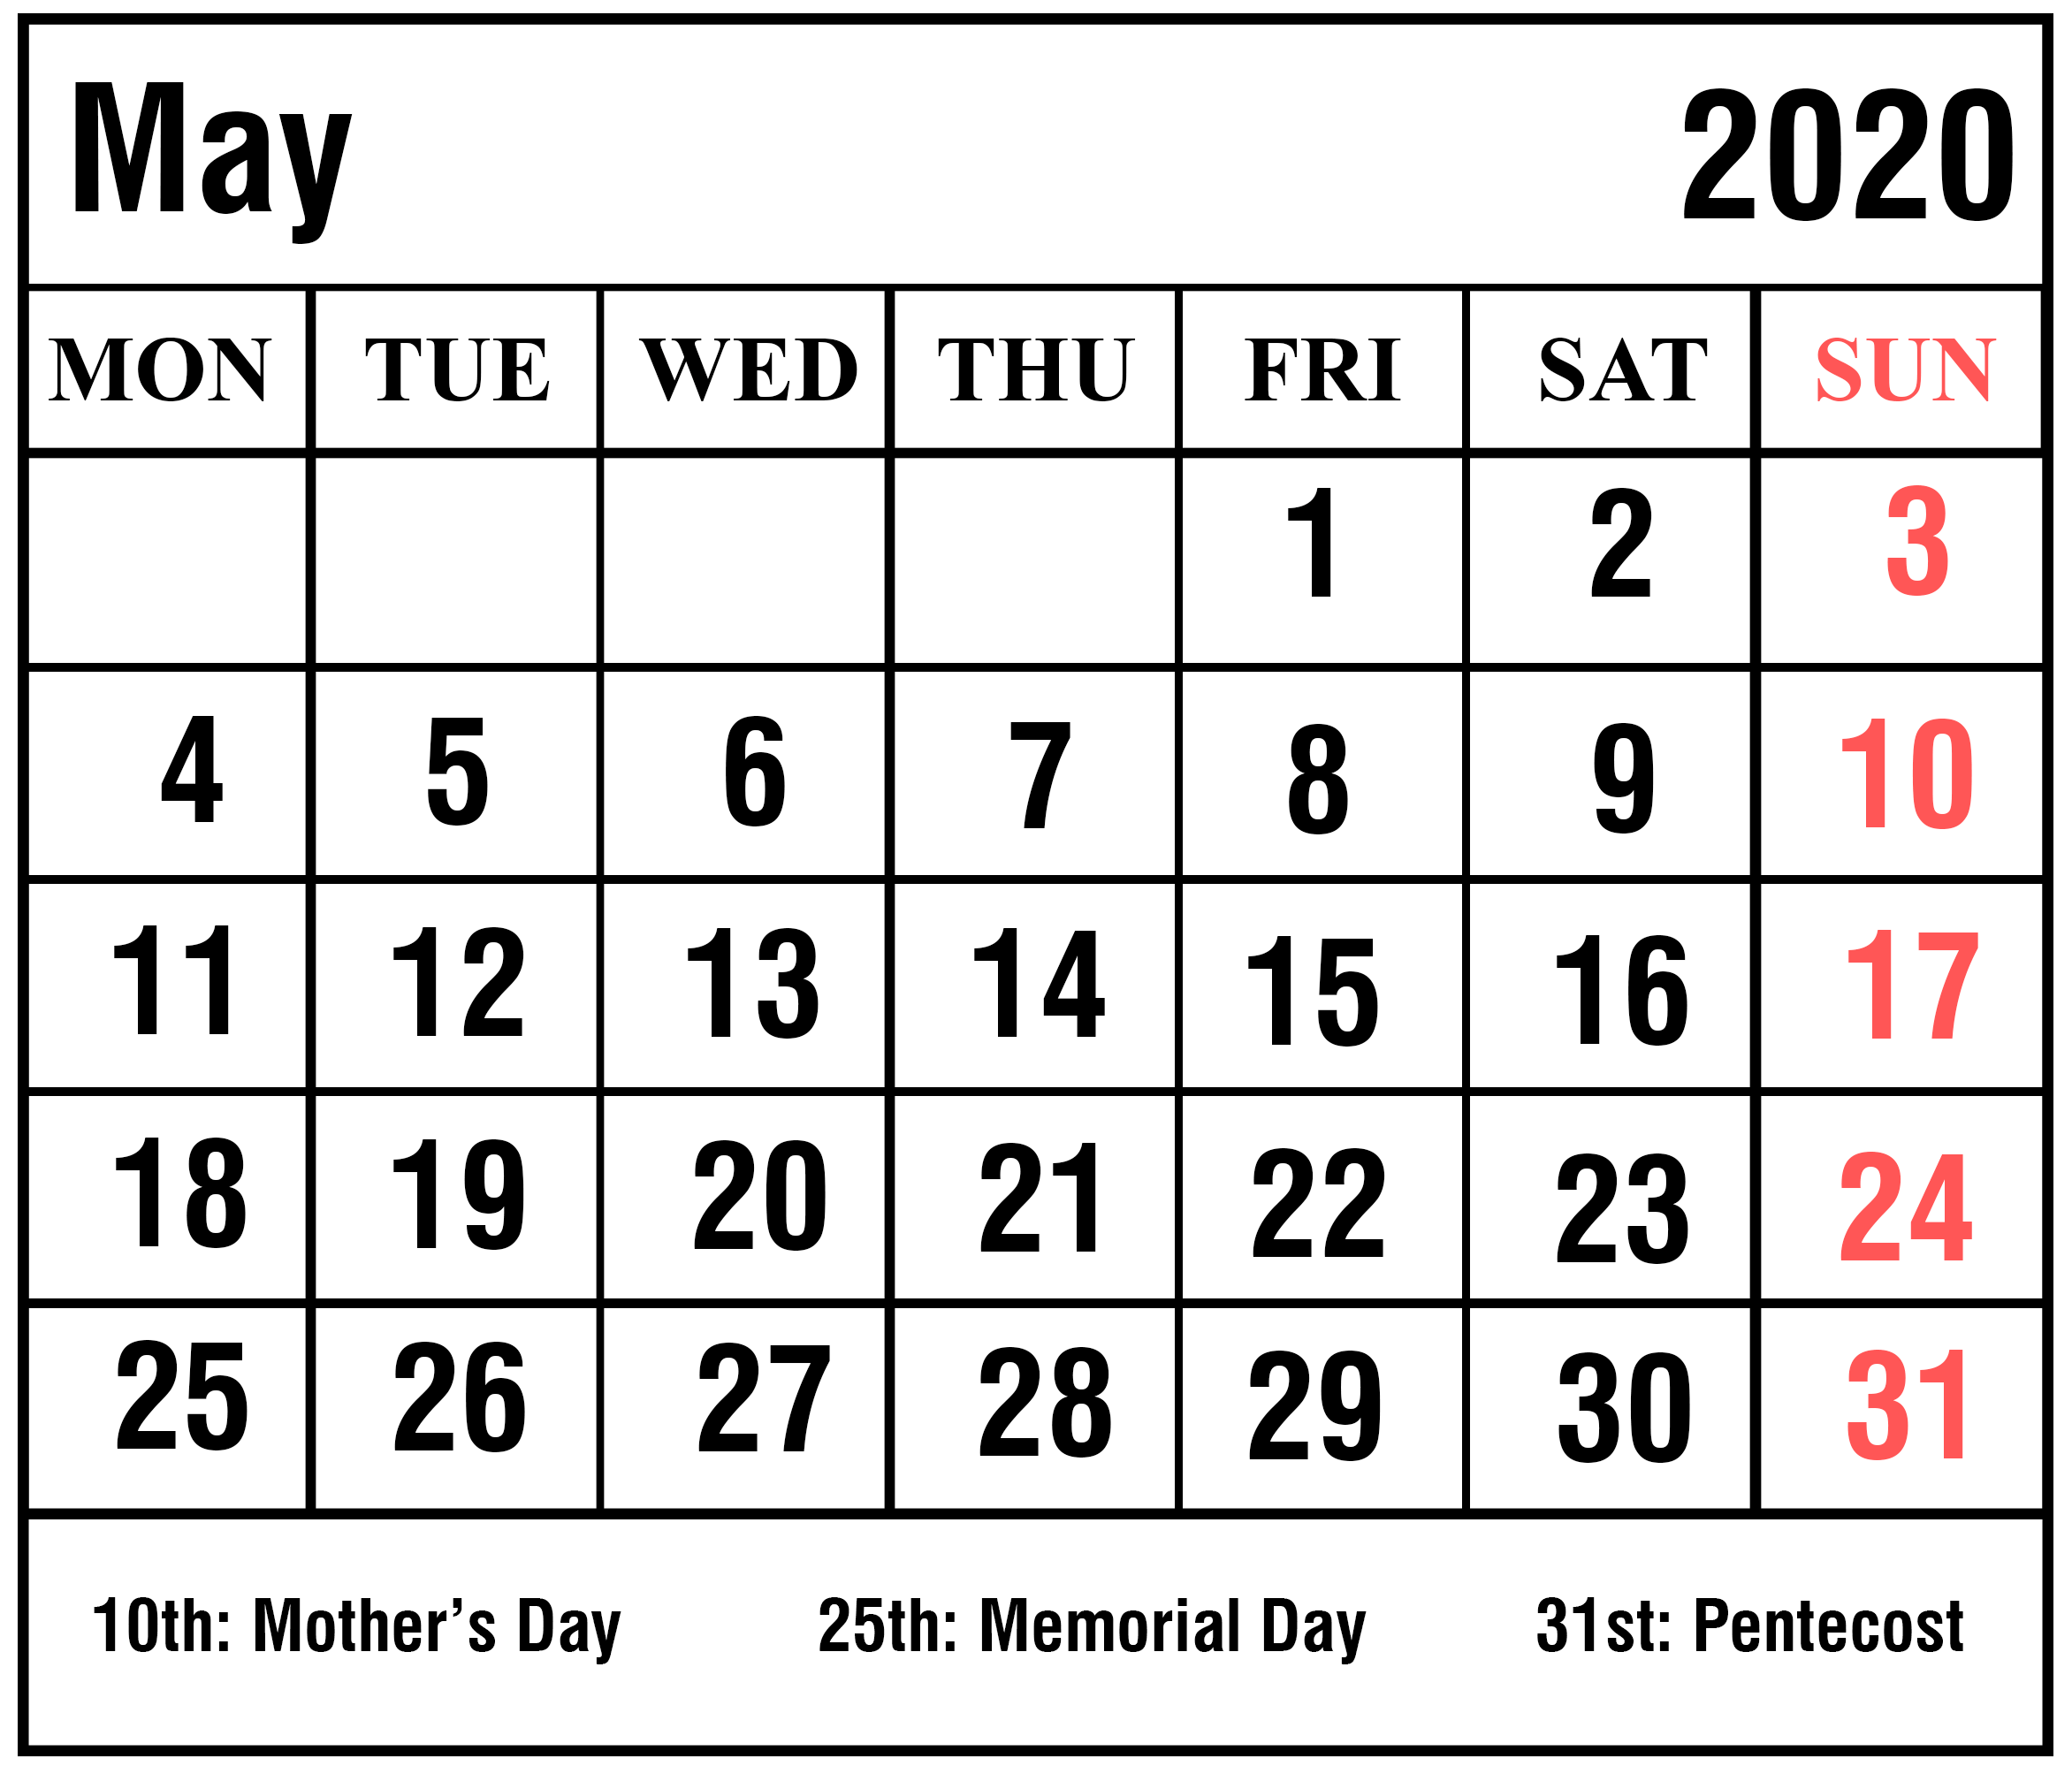 May Calendar 2020 Monthly